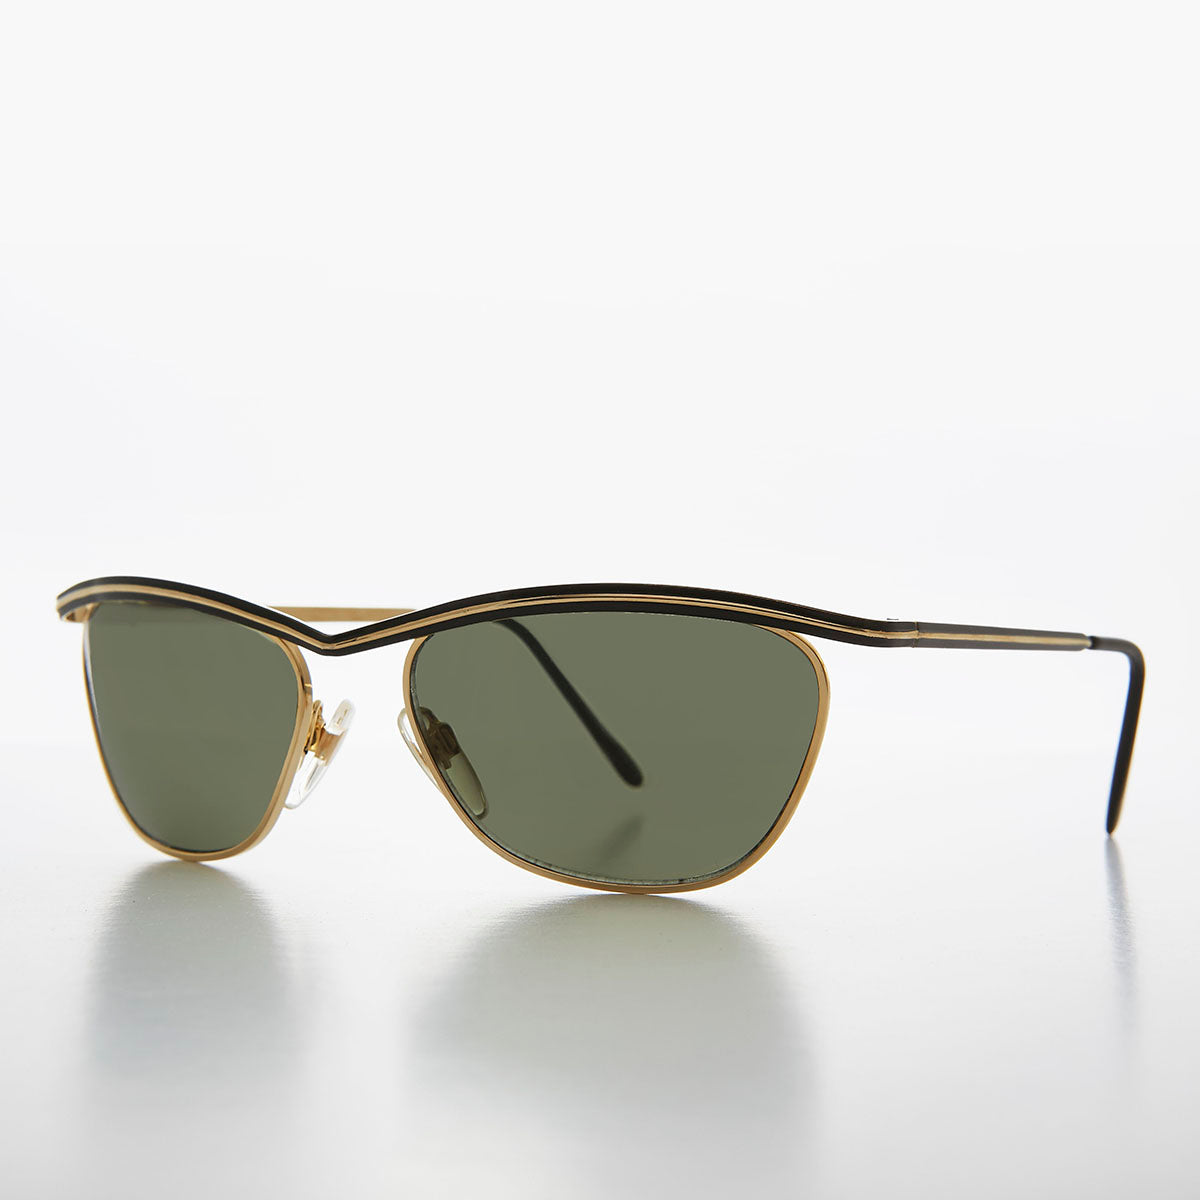 Rare Vintage Gold 1980s Stainless Steel Sunglasses